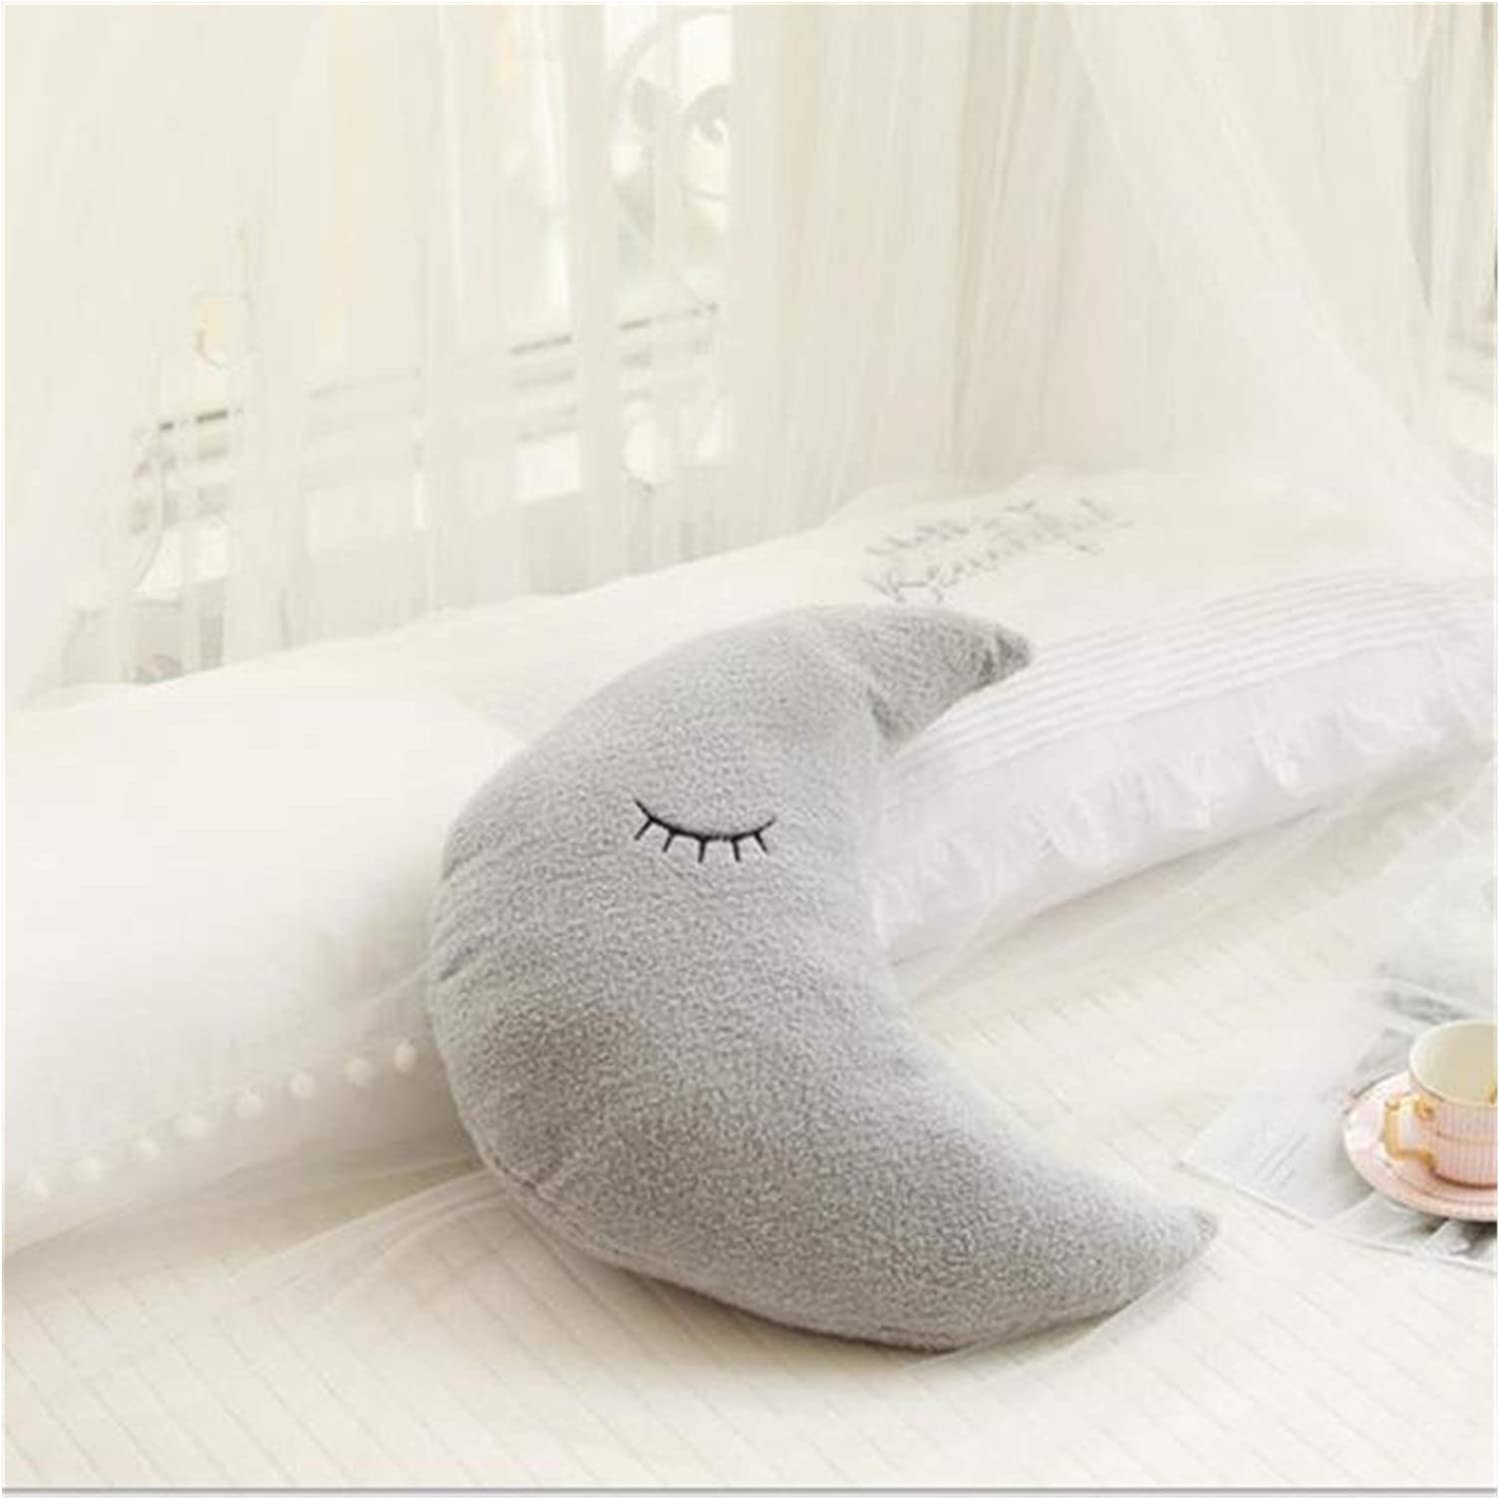 Plush Toys Nice Cash special price Stuffed Cloud Moon 70% OFF Outlet Pillow Raindrop So Star